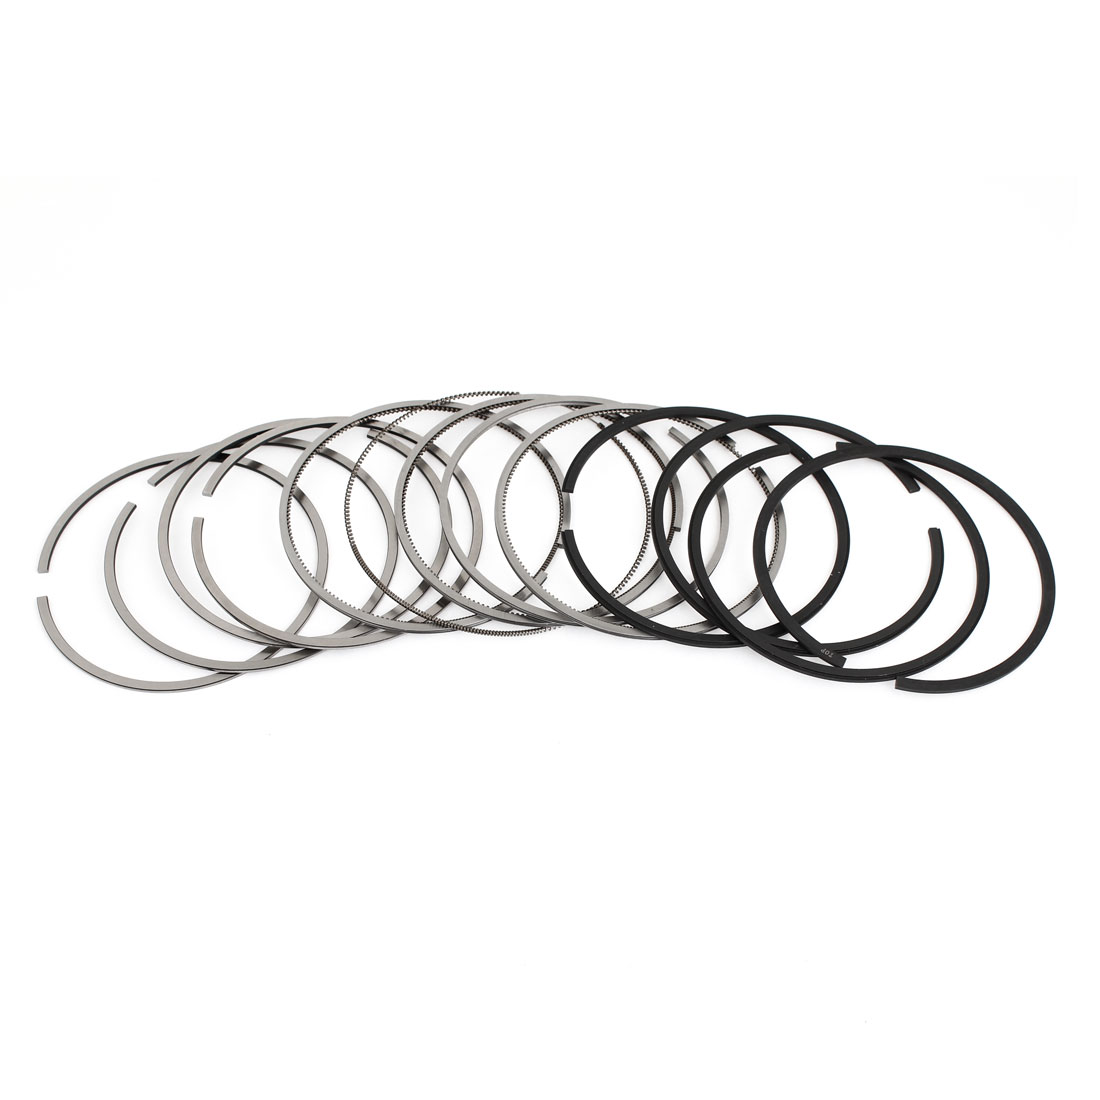 06B198151B 78mm Inner Diameter Piston Rings Set 12 Pcs for Auto